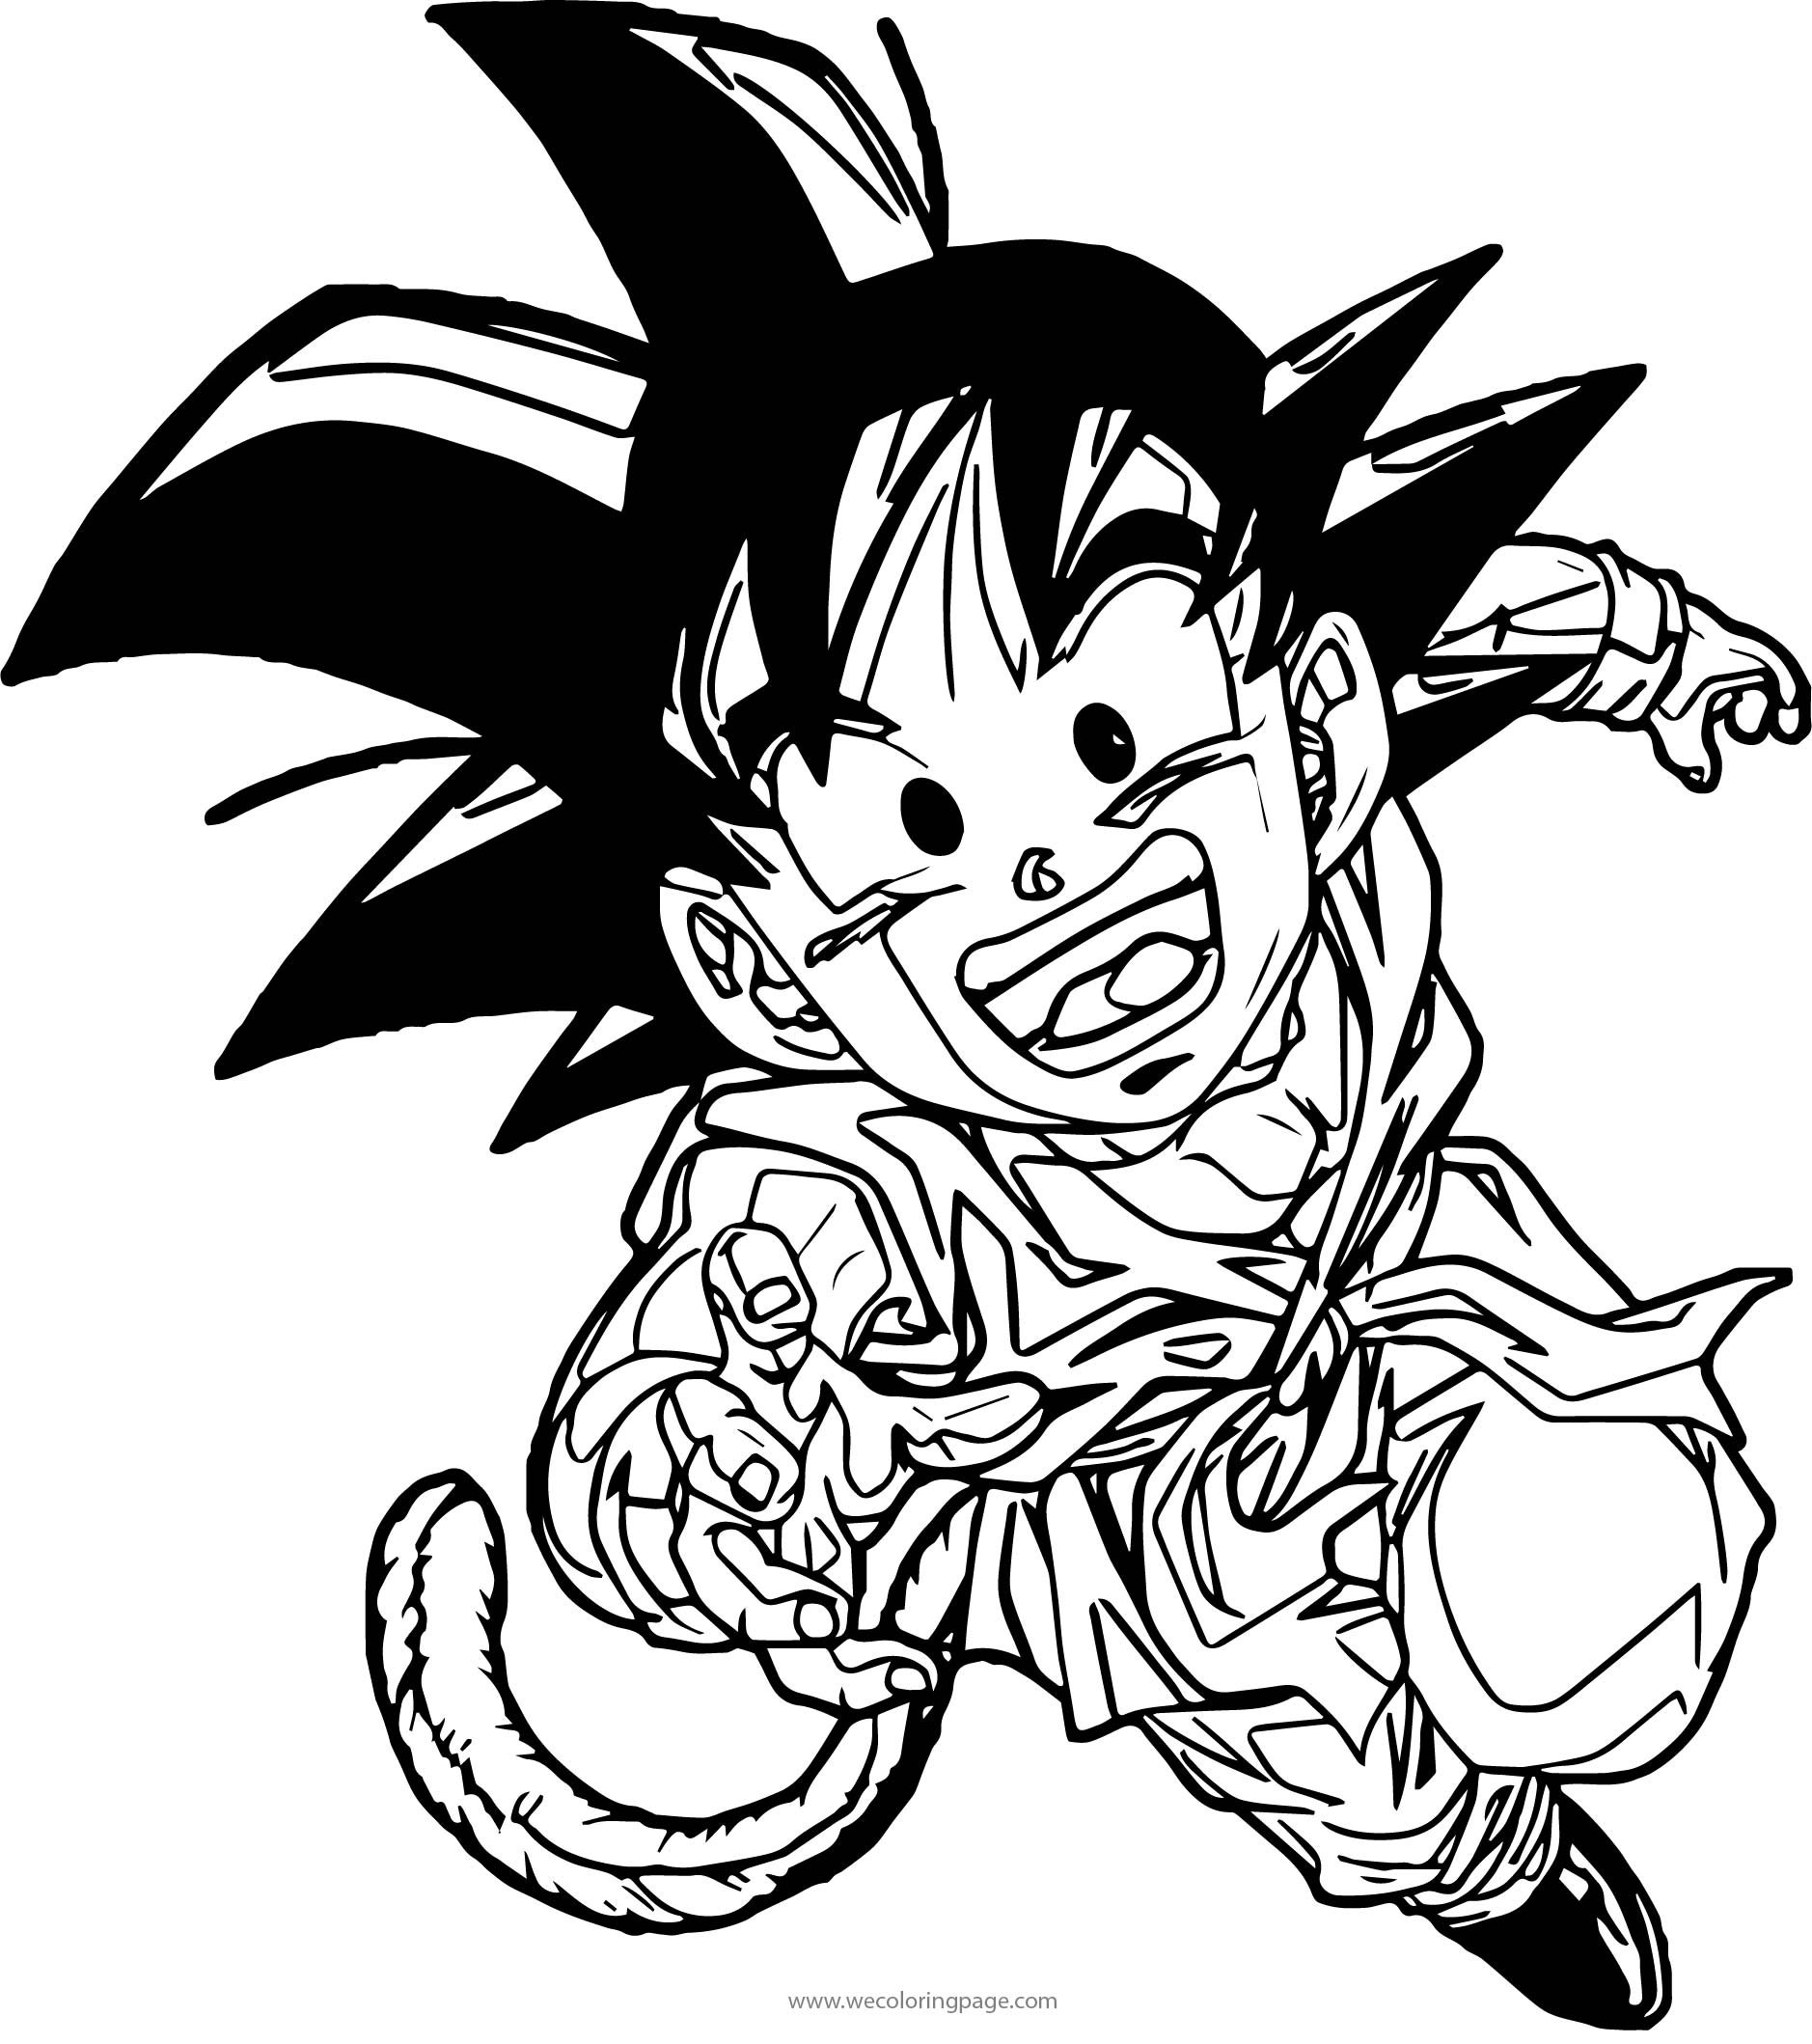 Kid Goku Fun Coloring Page